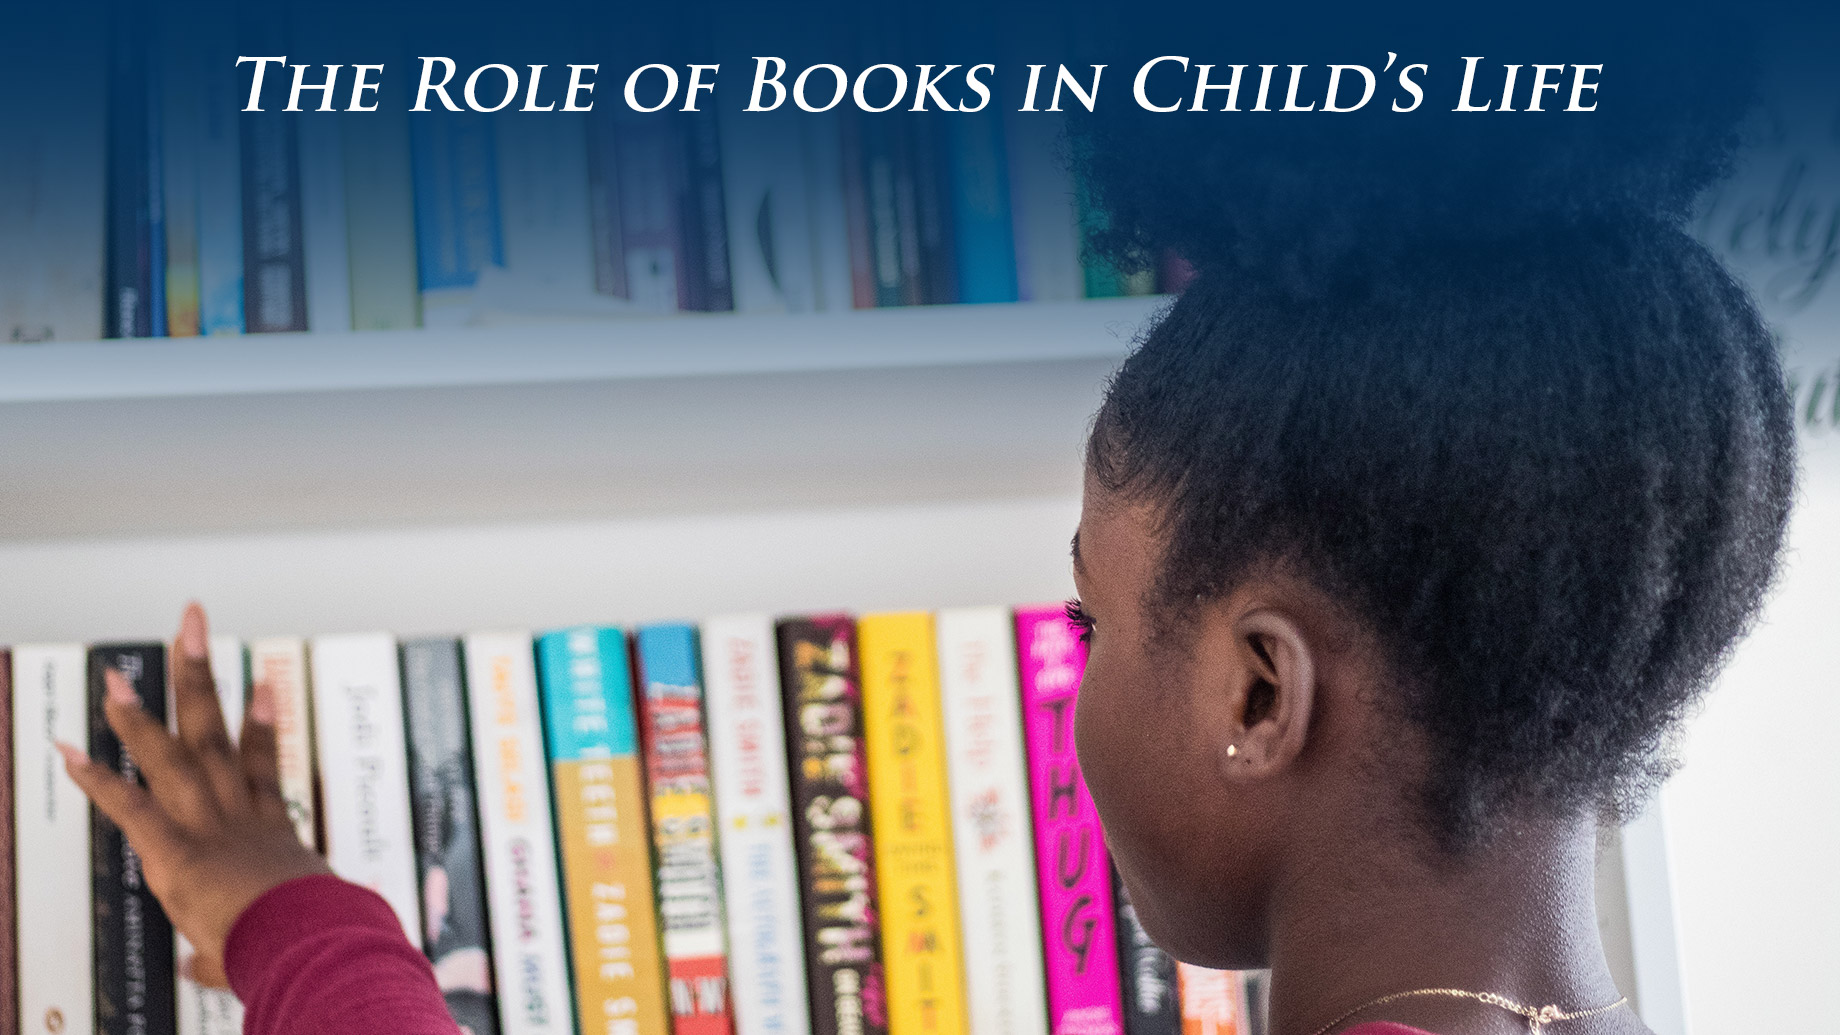 The Role of Books in Child's Life